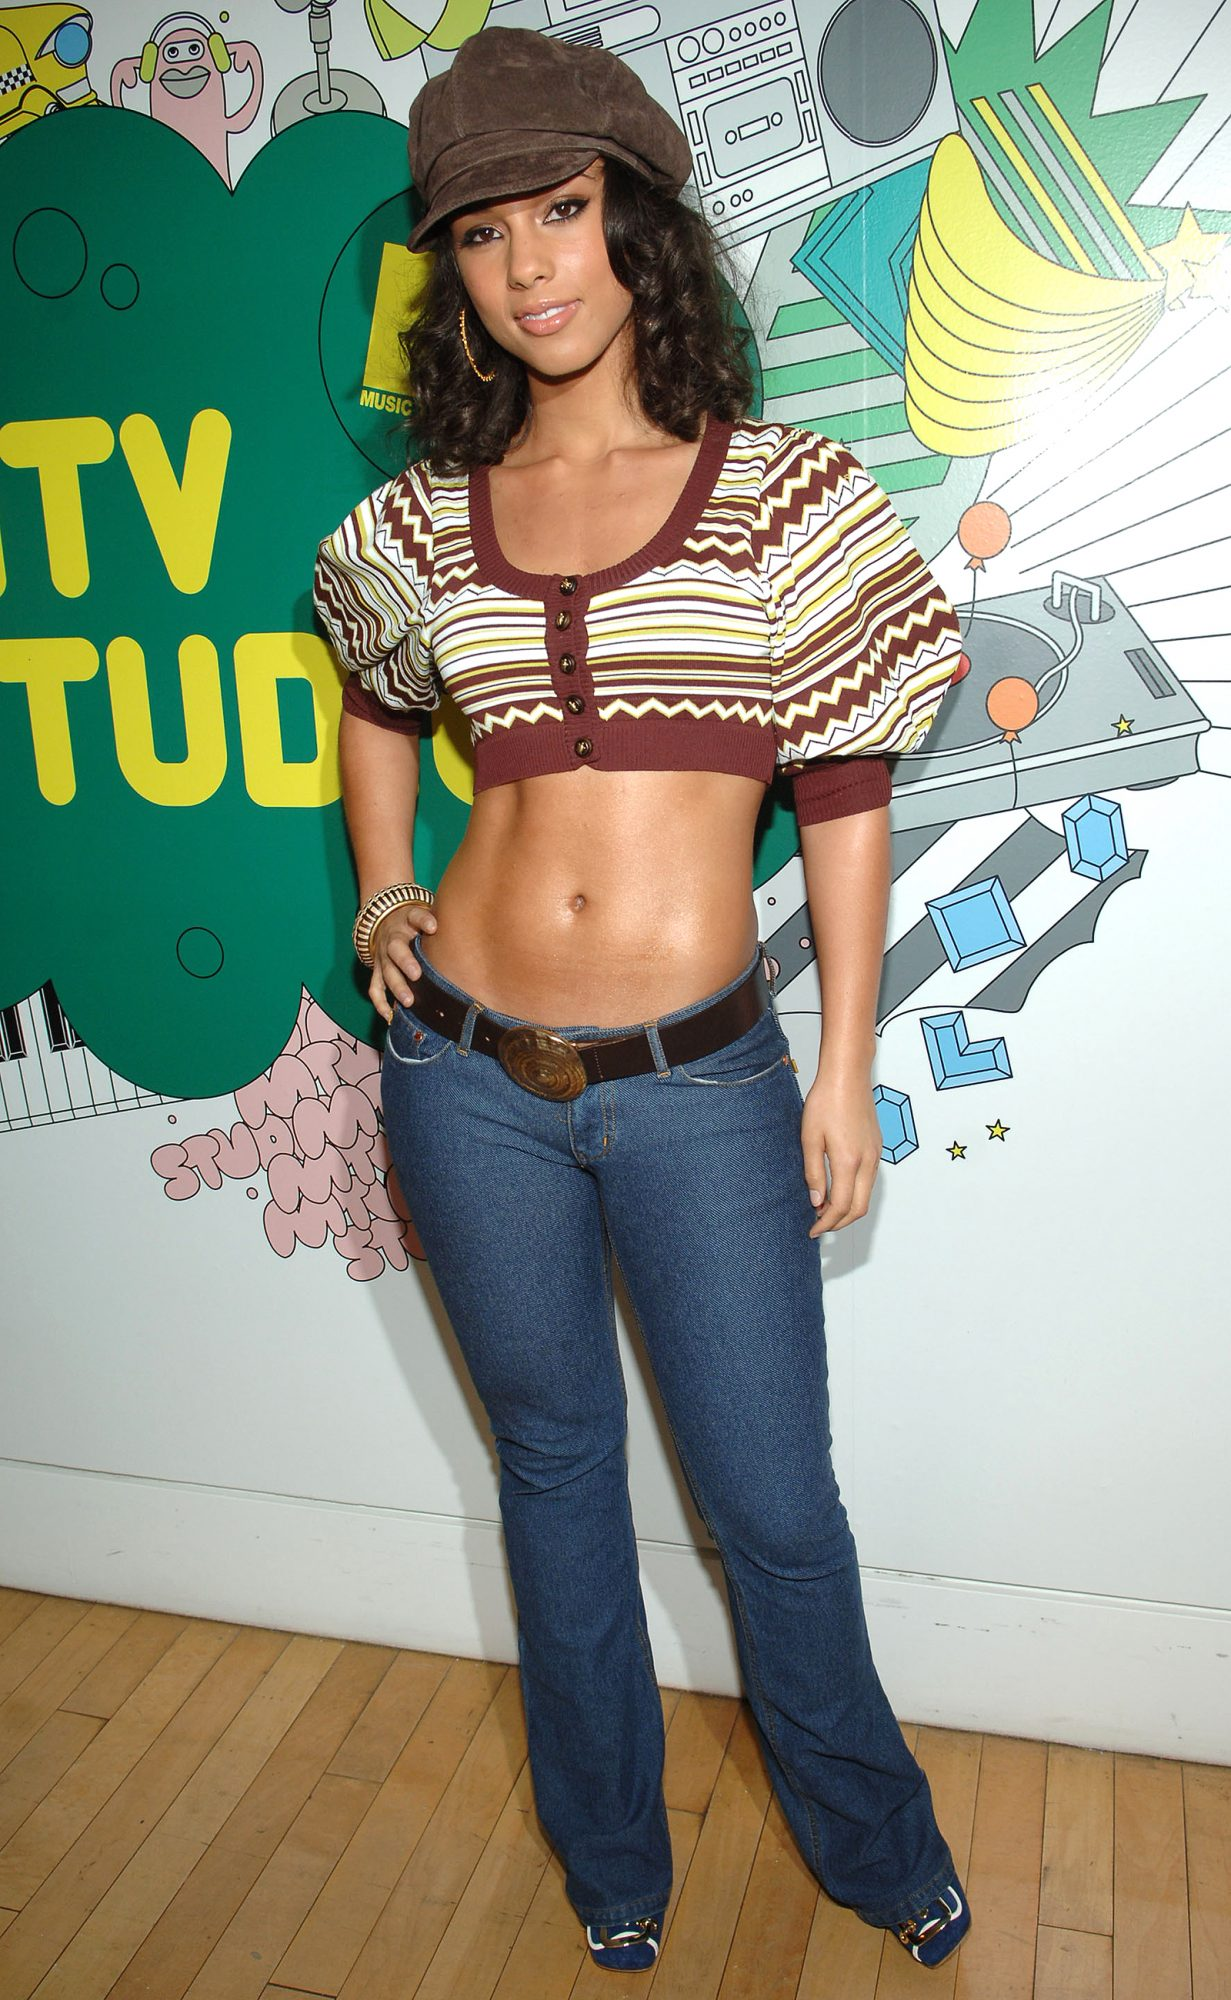 """Alicia Keys, Evangeline Lilly, Josh Lucas and the Cast of """"Glory Road"""" Visit MTV's """"TRL"""" - January 11, 2006"""